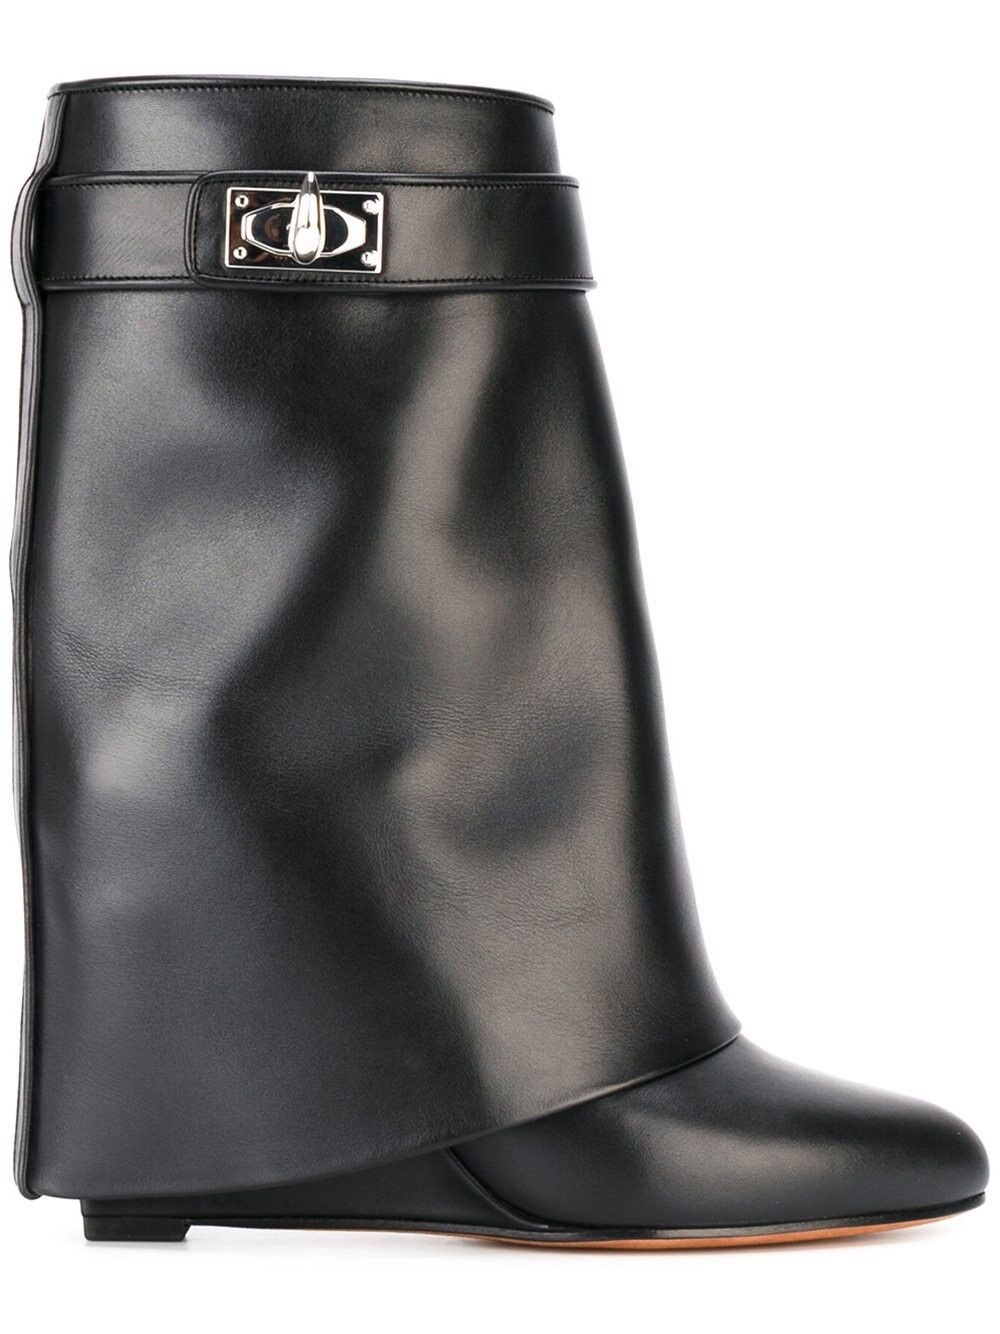 New givenchy Shark lock Boots-UE 40 Noir-Leather